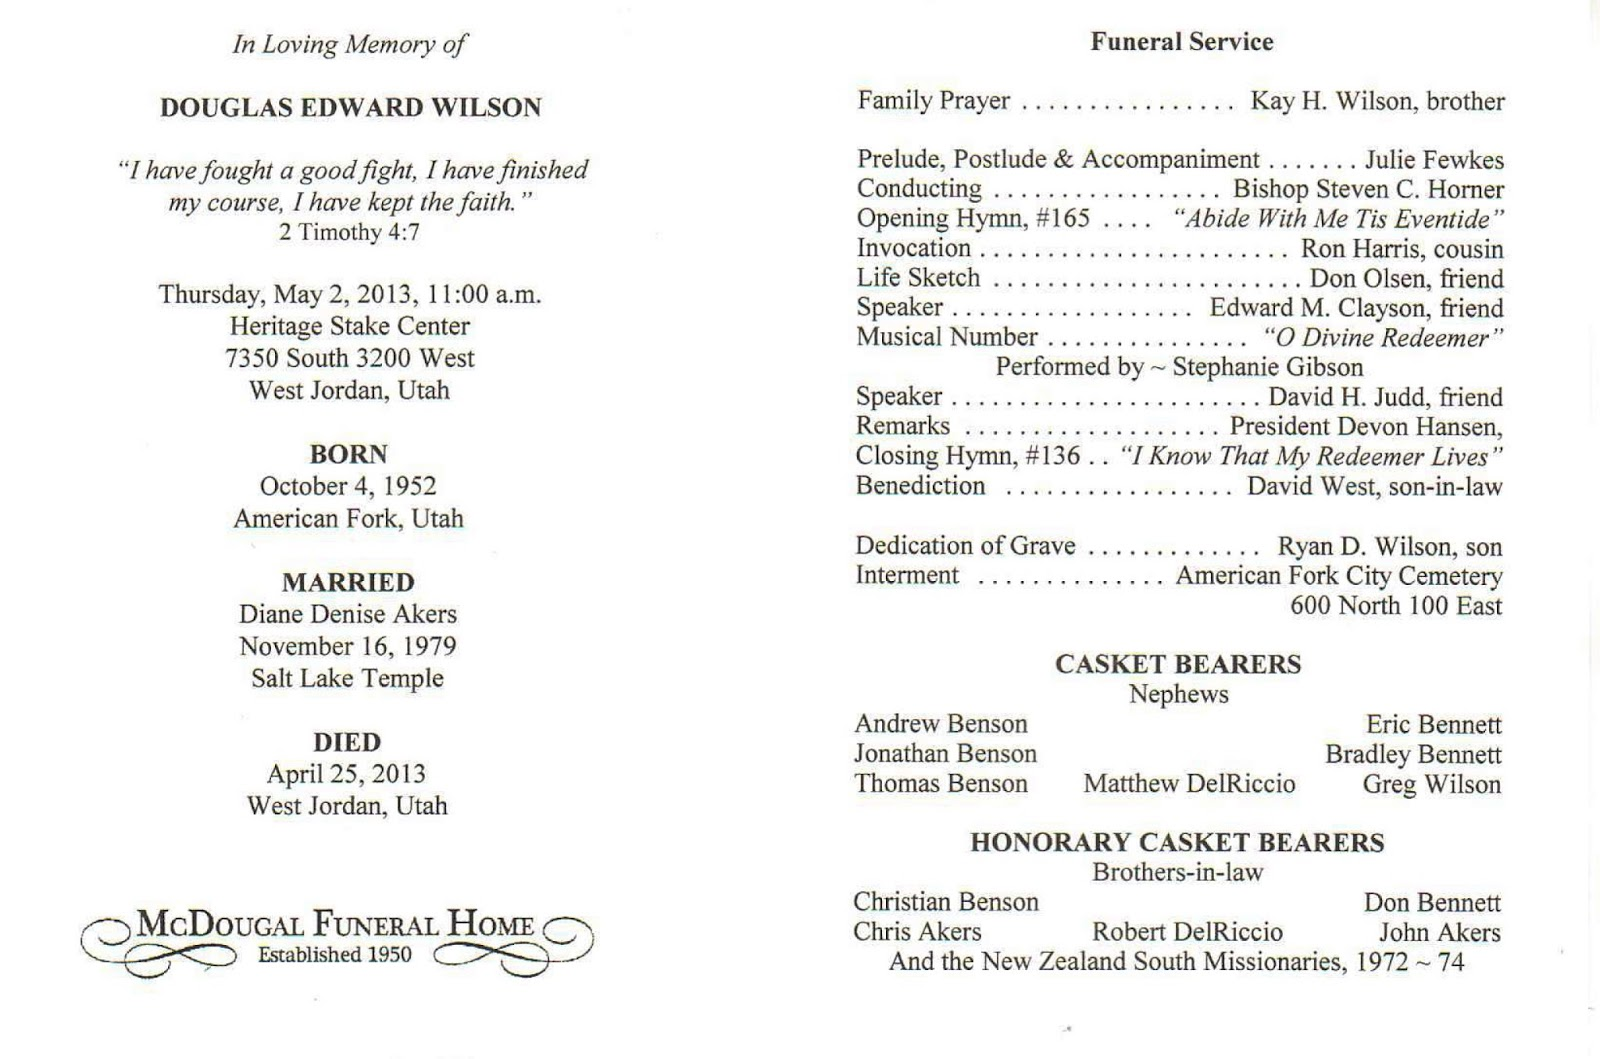 DOUG WILSON'S LATEST: Funeral Recording and Program: thelatestondoug.blogspot.com/2013/05/funeral-recording-and-program...